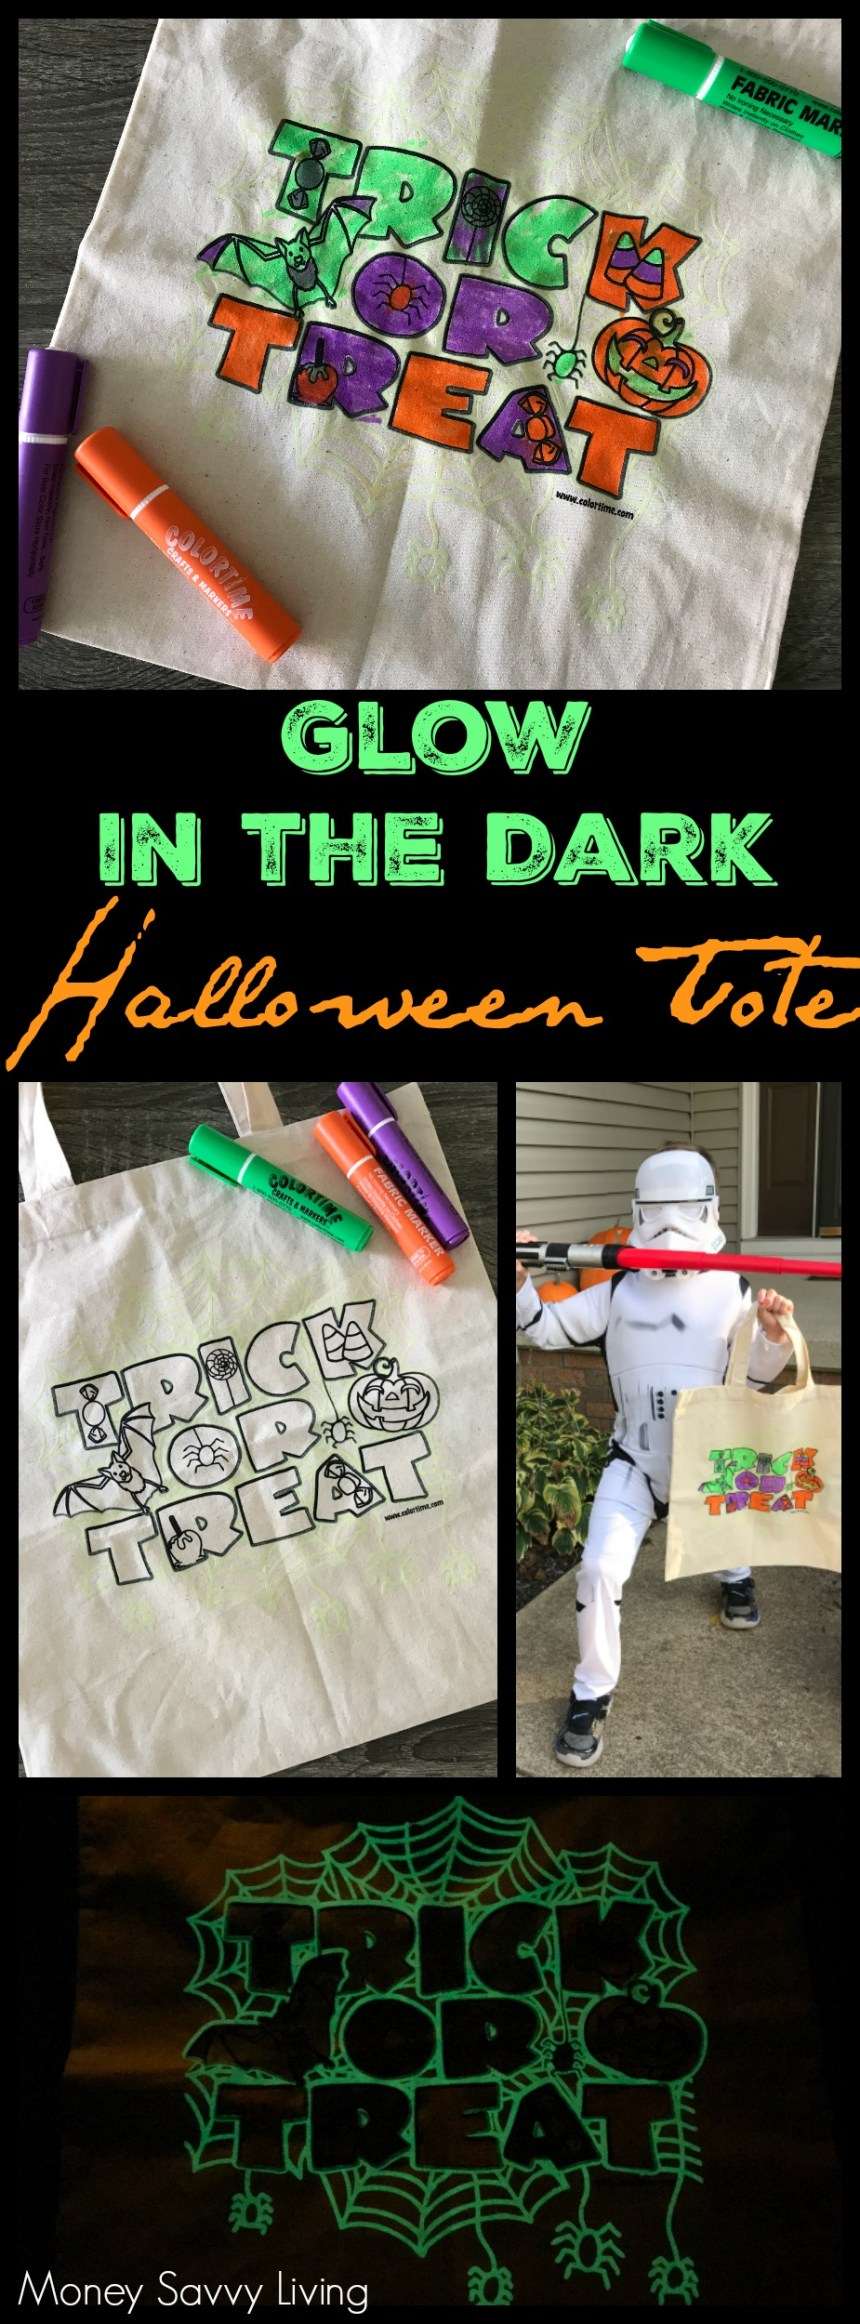 Getting ready to take your kids treat-or-treating this Halloween? They will love making this Glow in the Dark Trick or Treat Tote for Halloween. #Colortime #Halloween #trickortreat #halloweencandy